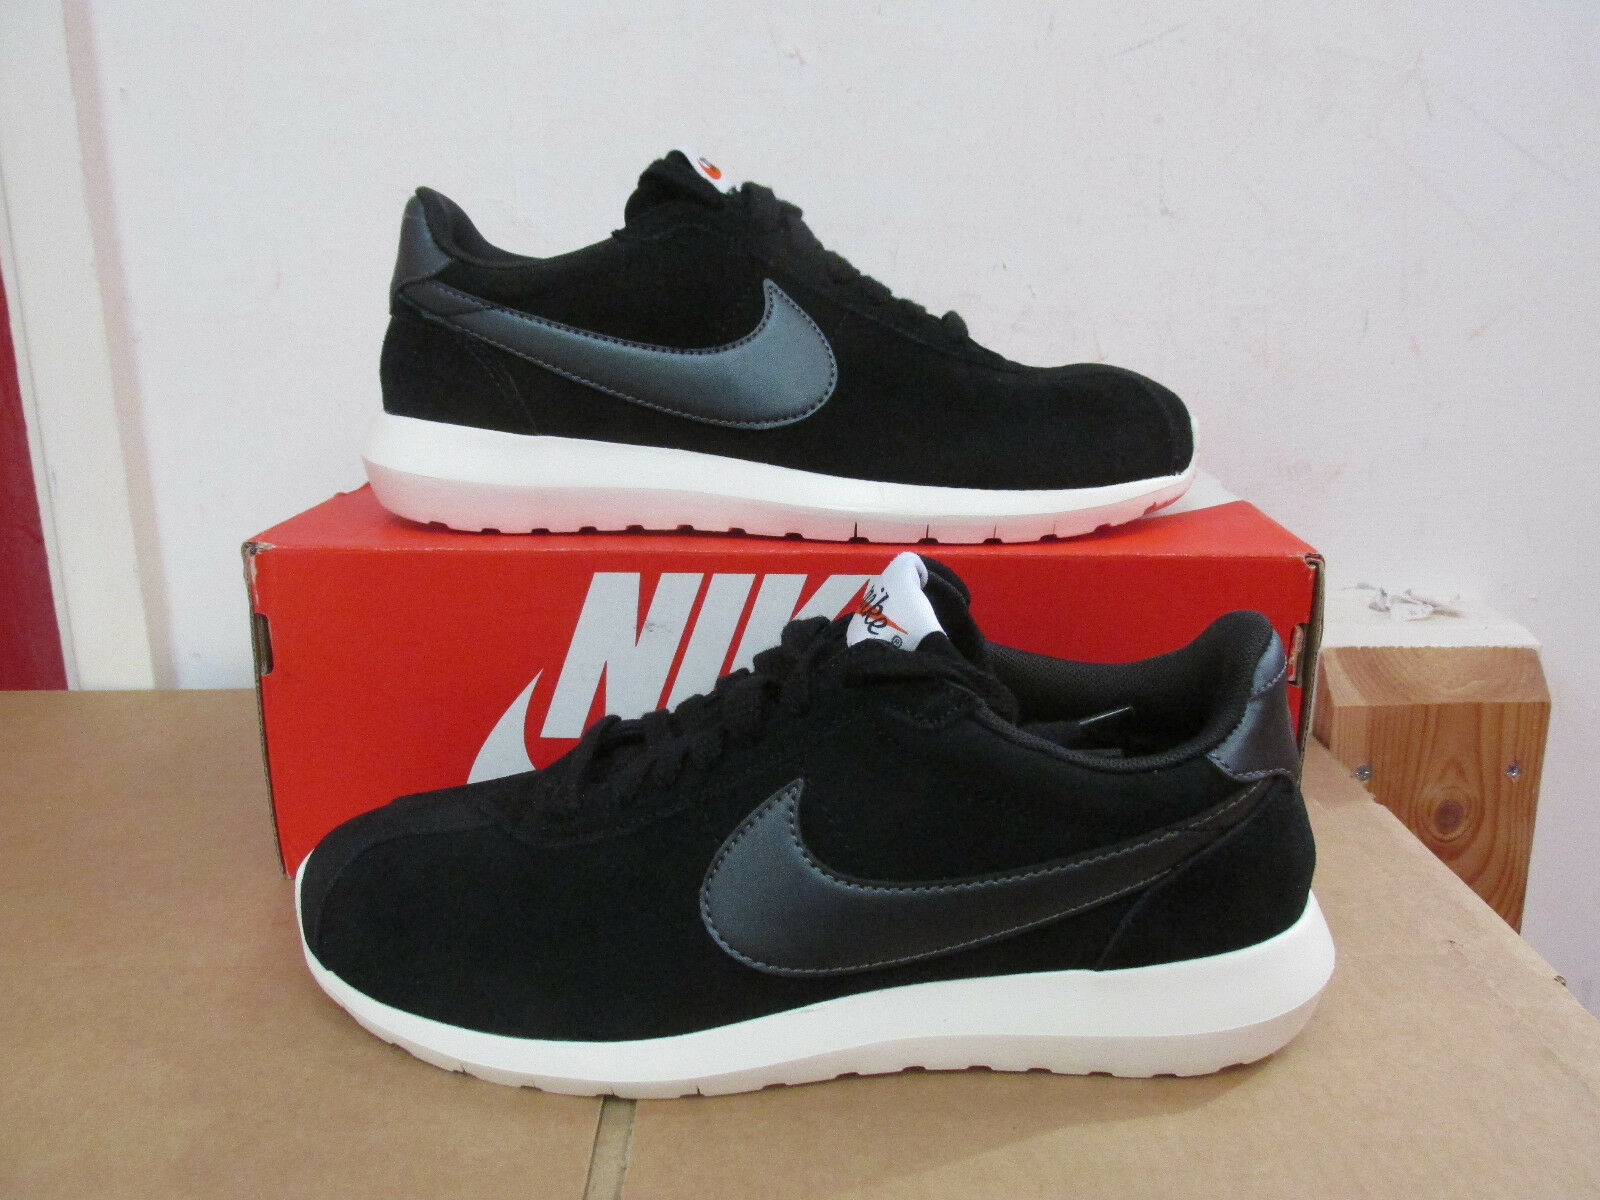 Nike femmes Roshe LD 1000 running trainers 819843 002 sneakers chaussures CLEARANCE